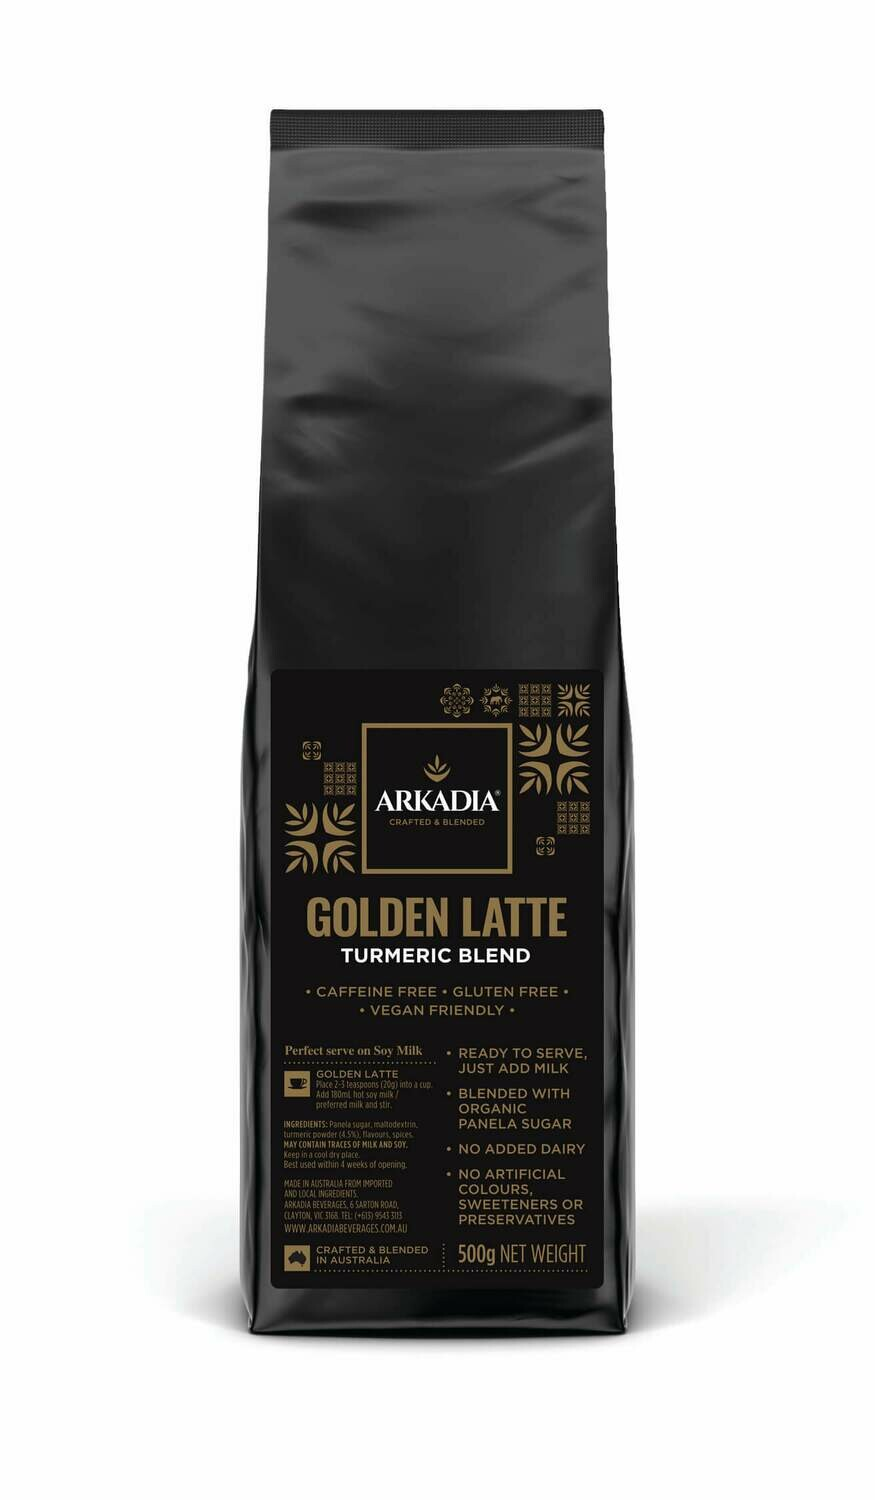 ARKADIA GOLDEN TURMERIC LATTE 500g